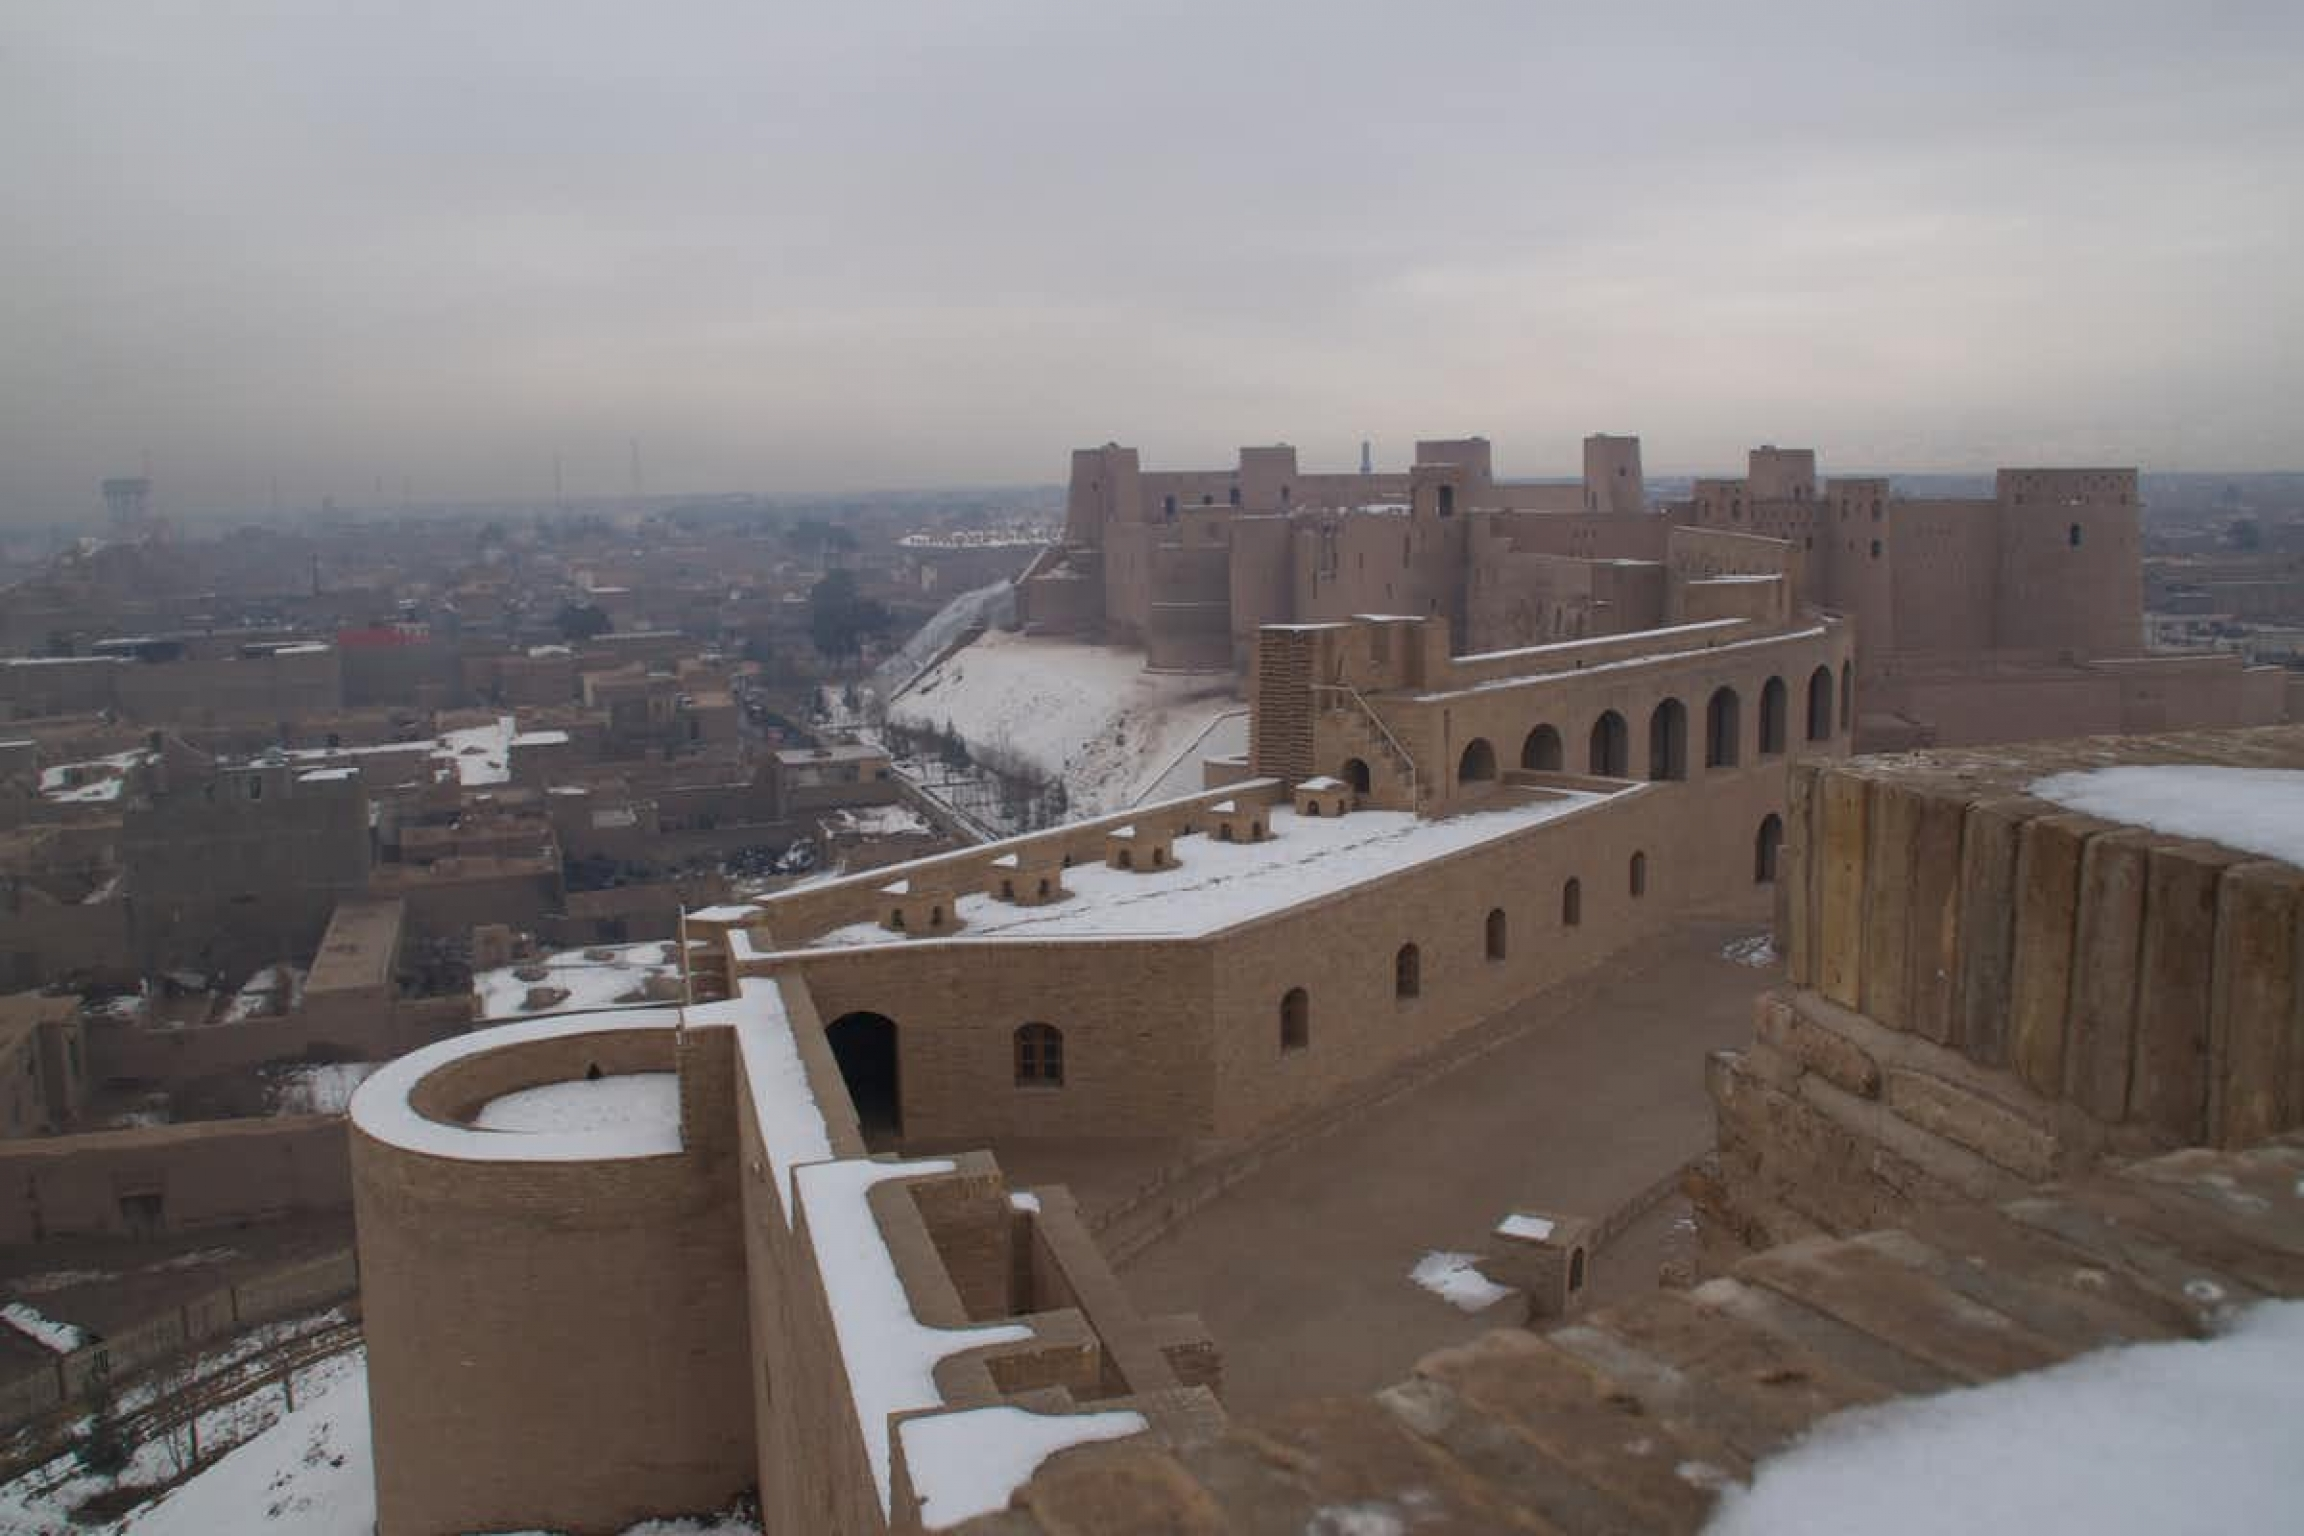 The Citadel of Herat, which dates to 330 BC, holds a commanding view of the surrounding city.